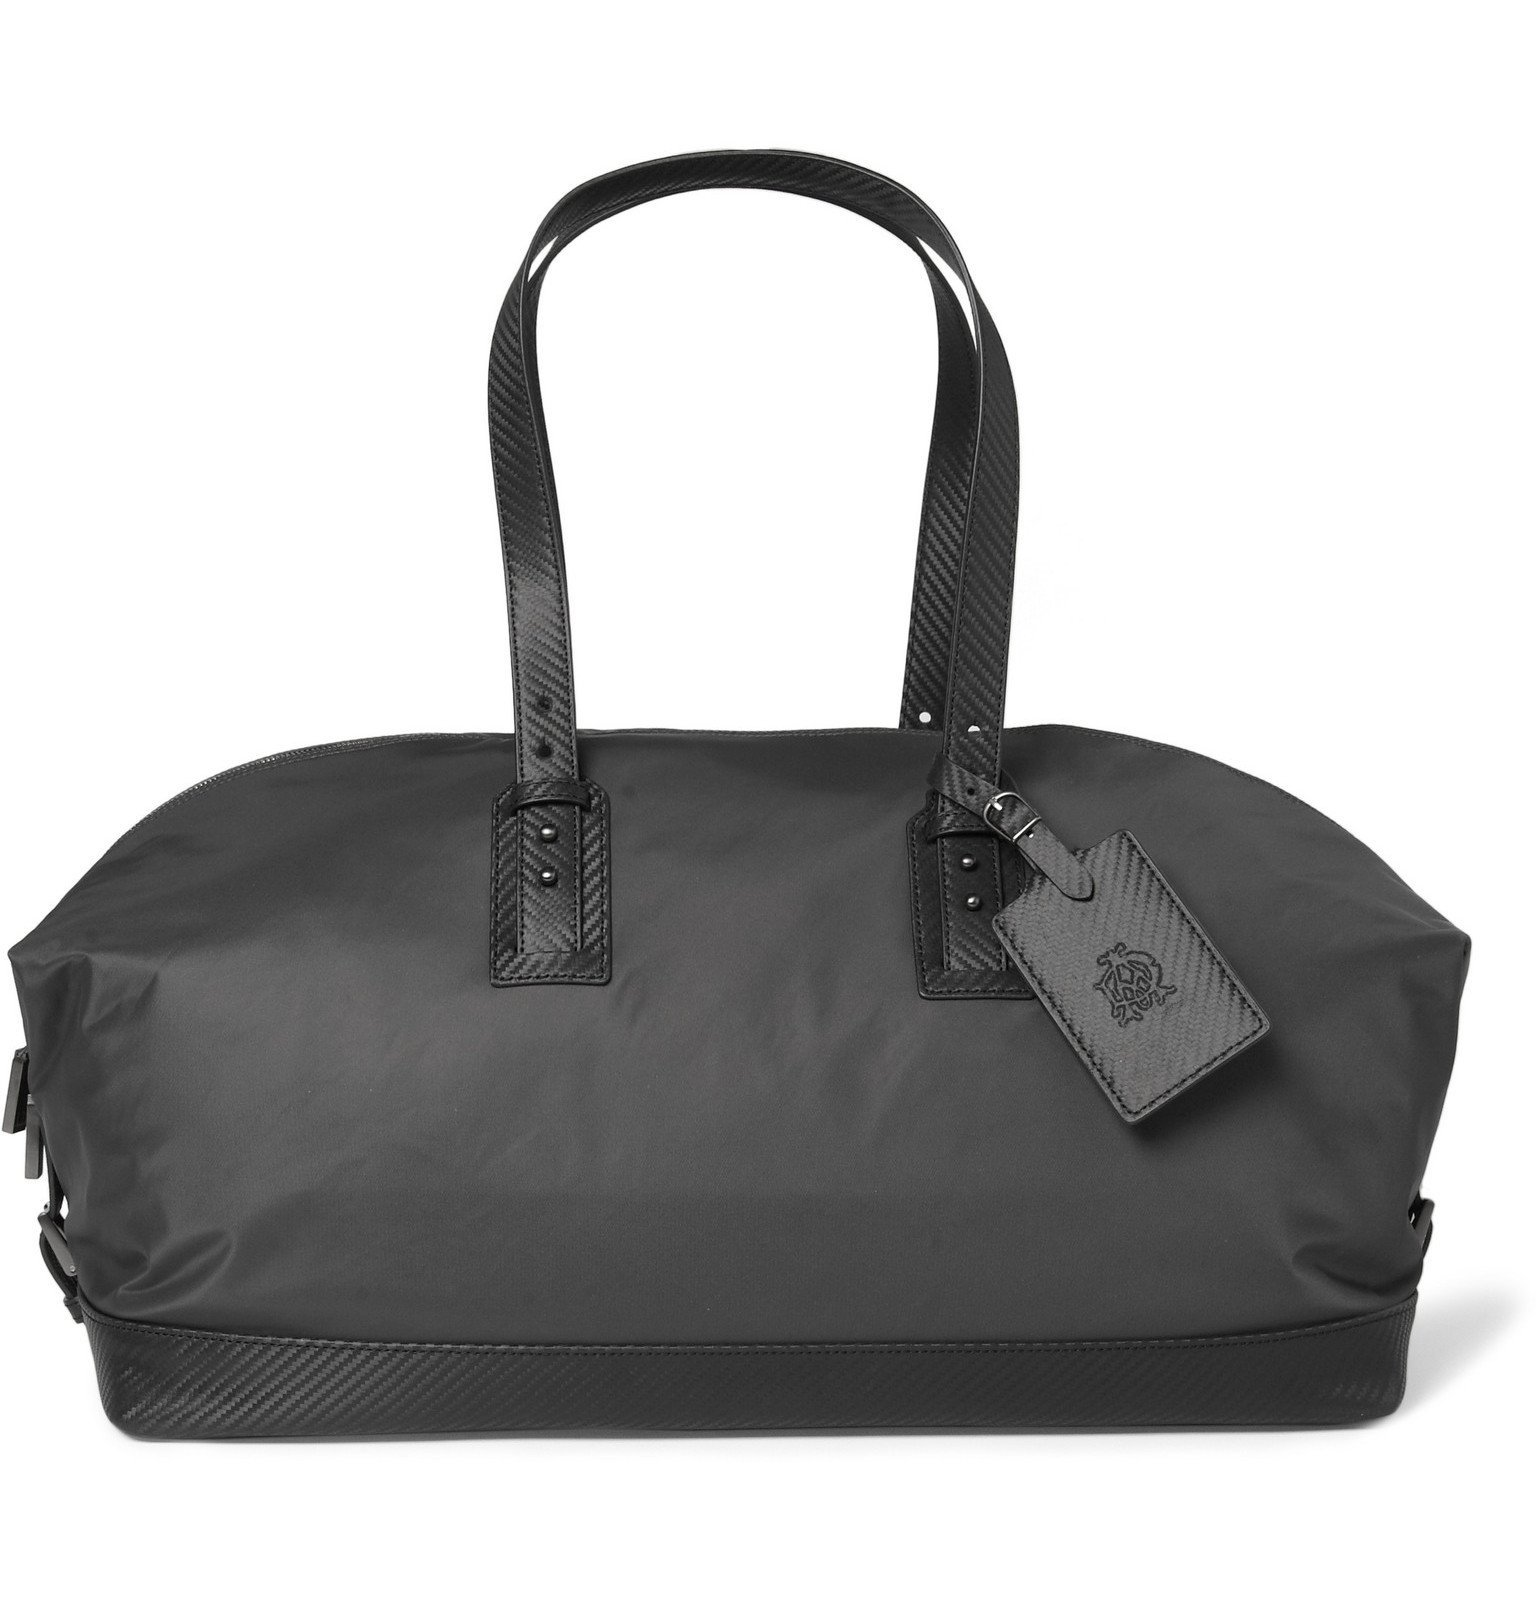 Dunhill - Lightweight Leather-Trimmed Holdall Bag - Gray